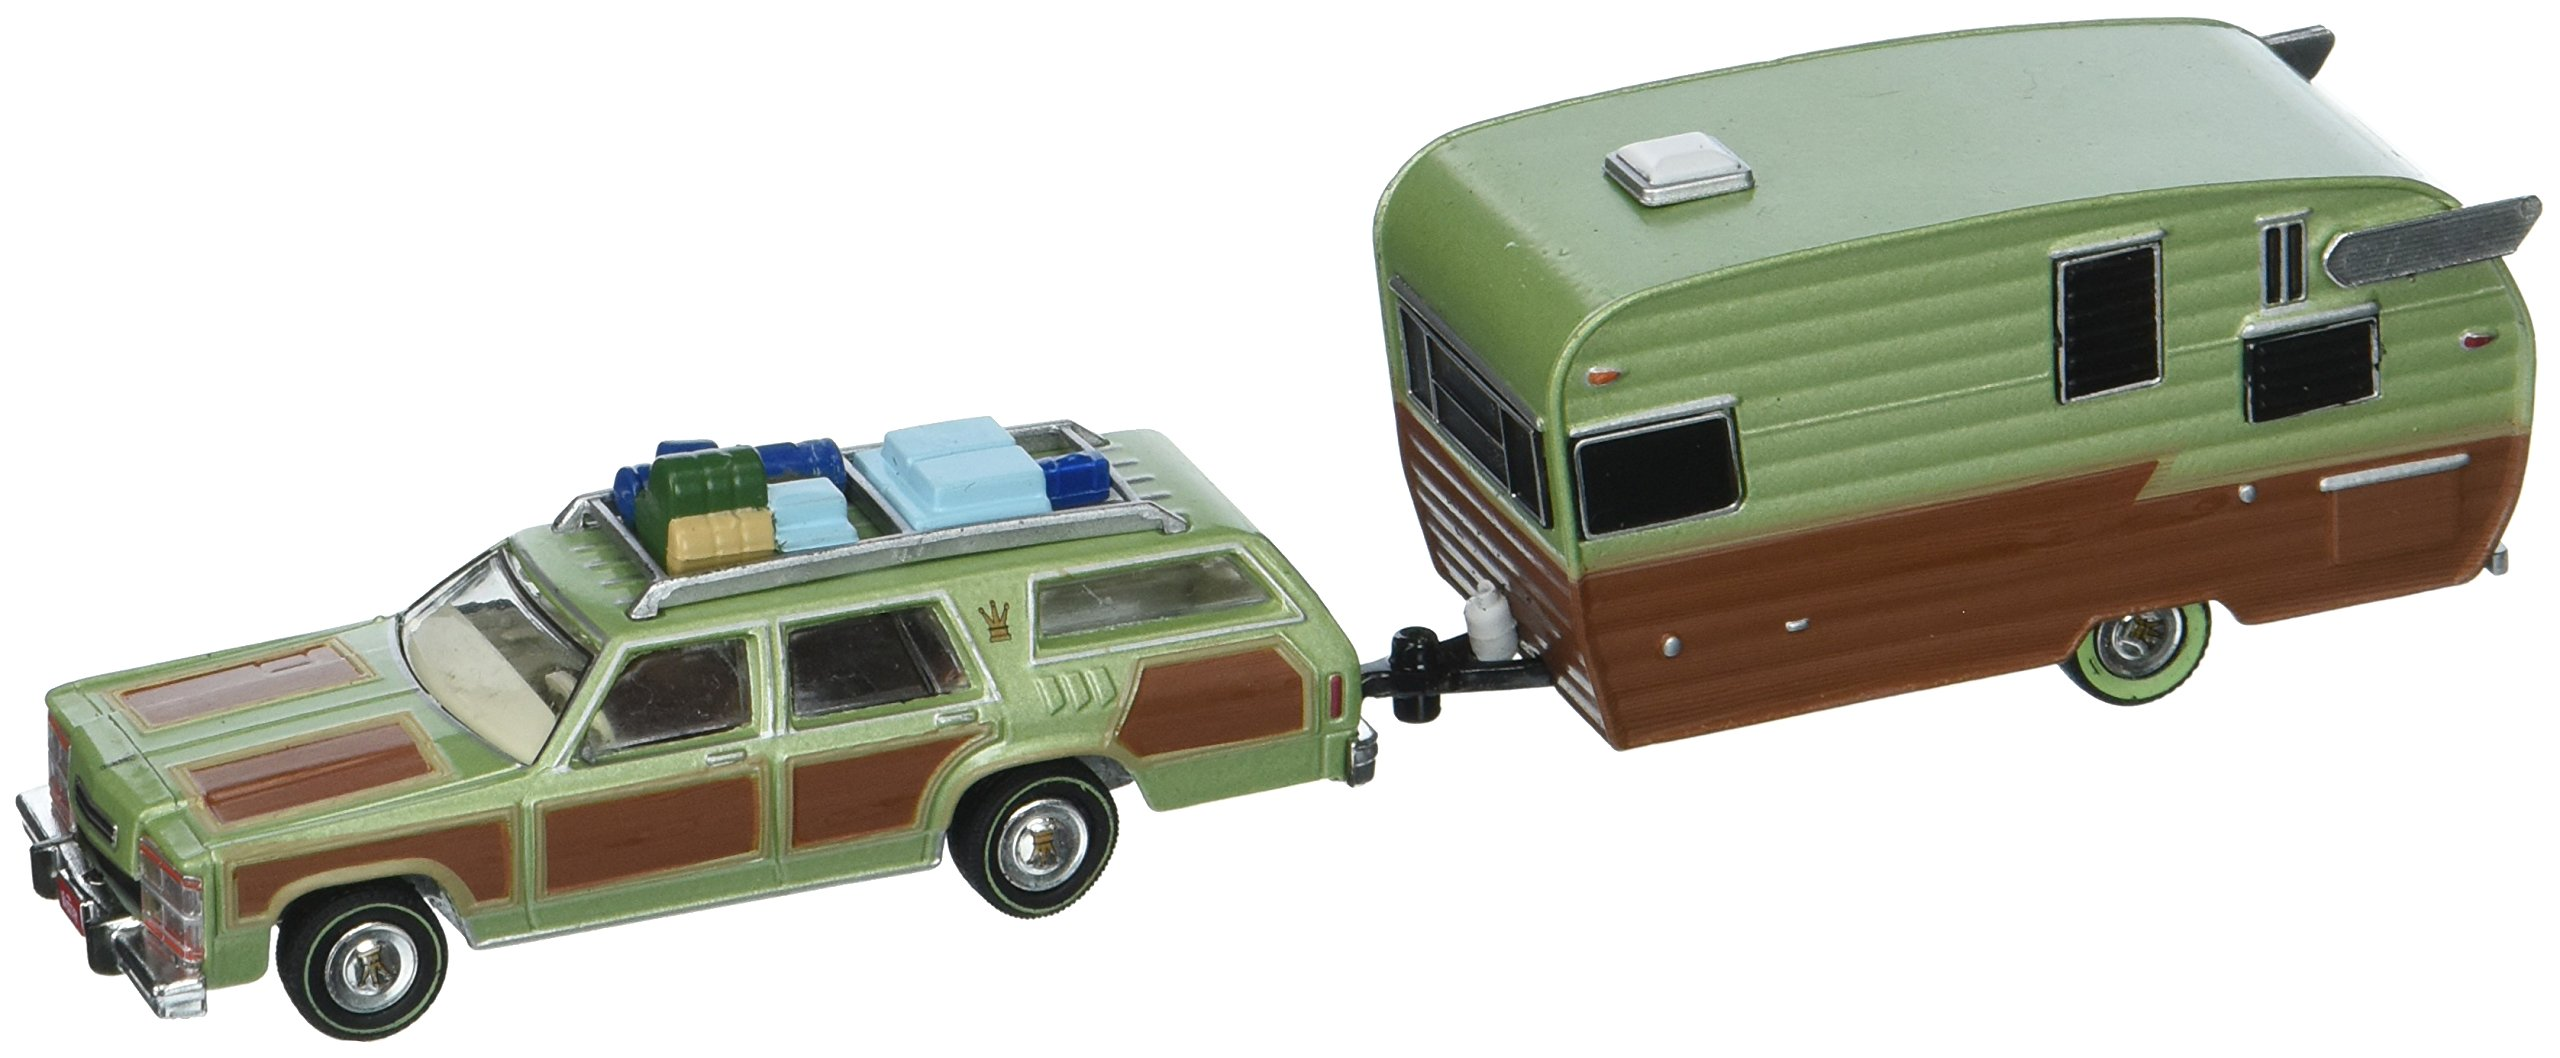 1979 Family Truckster Wagon Queen National Lampoon's Vacation (1983) with Shasta 15' Airflyte Trailer Hitch & Tow 1/64 by Greenlight 51036